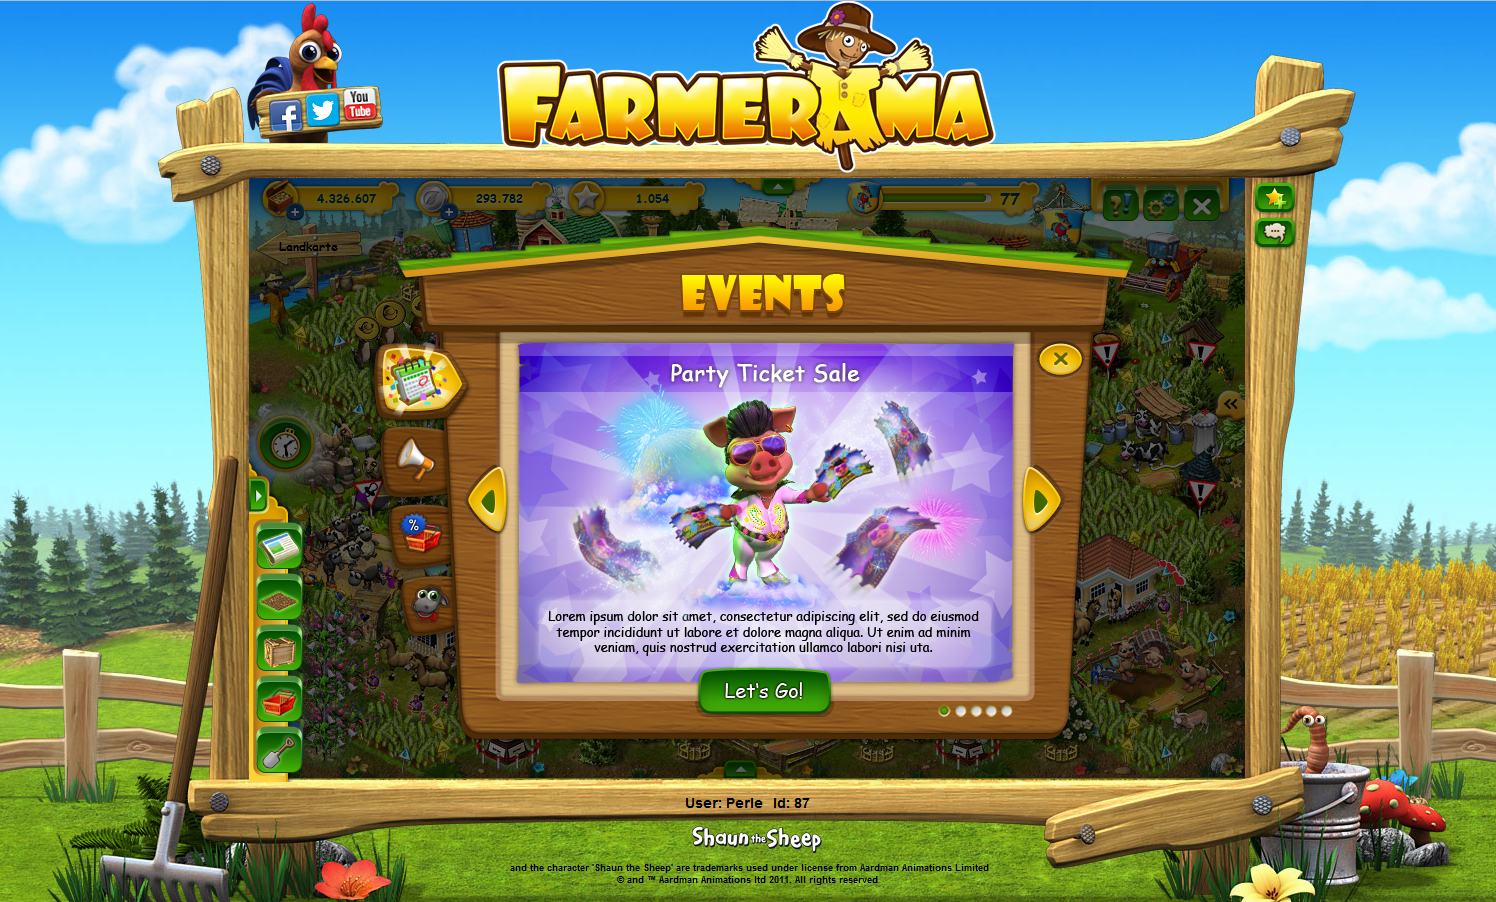 farmwheel2015scaryscarecrow_news_ui_partyticket-packages.jpg